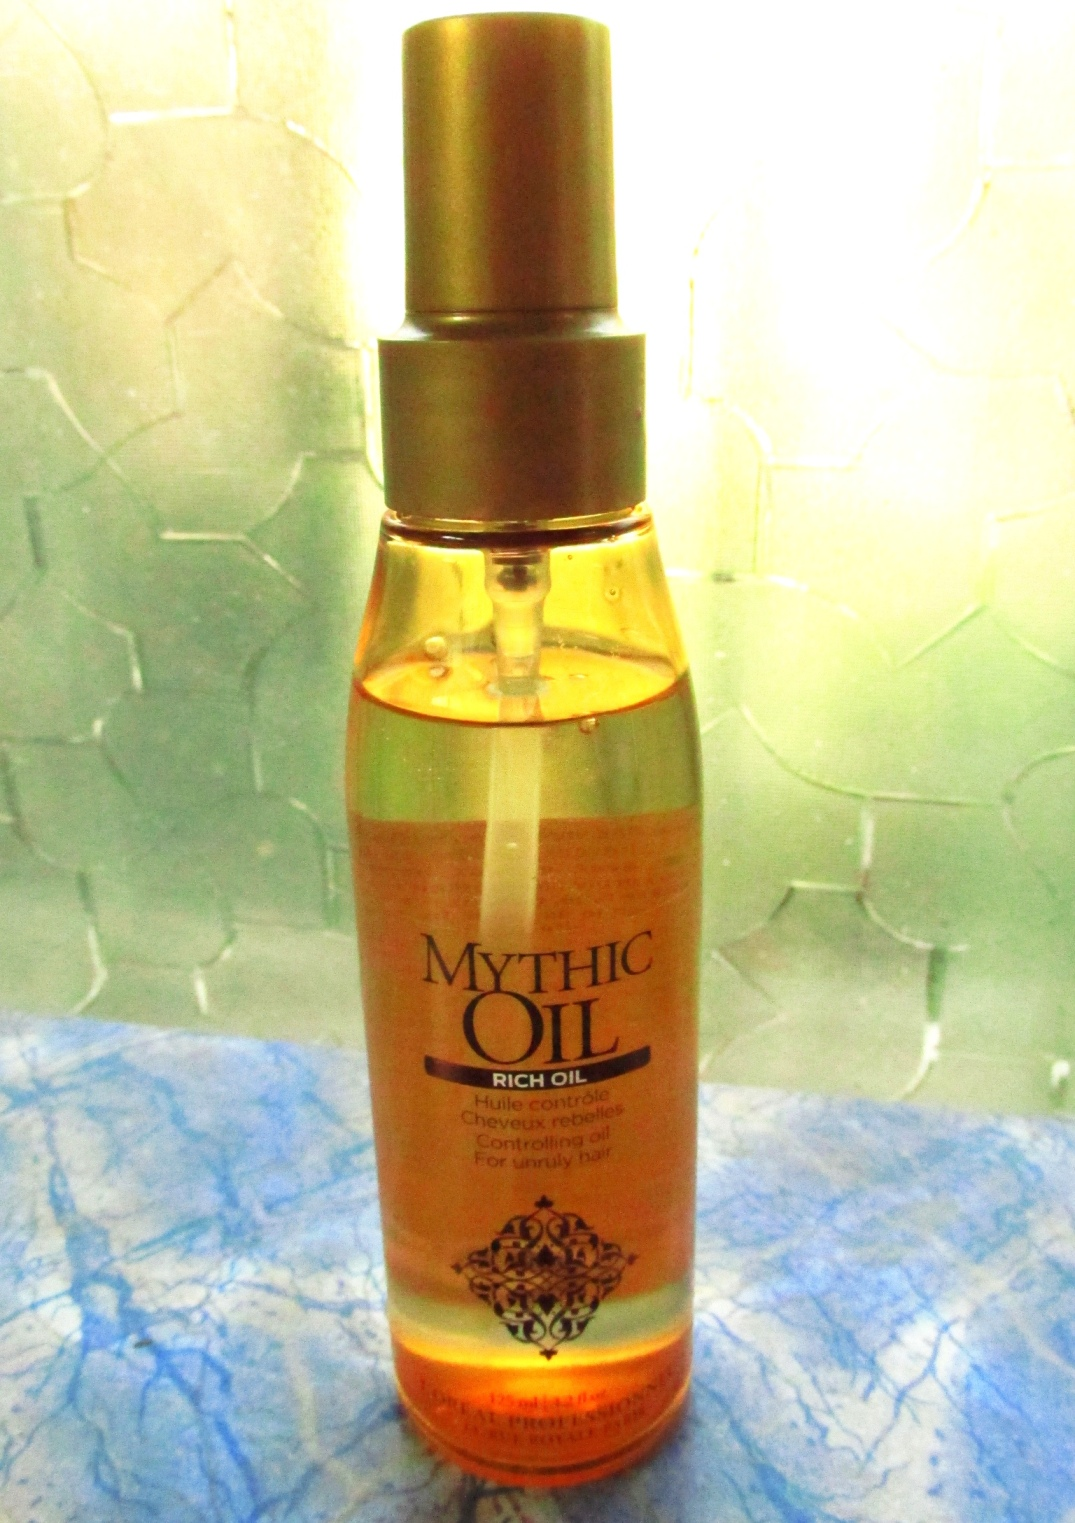 Extraordinary Oil L'oreal Review L'oreal Mythic Oil Review